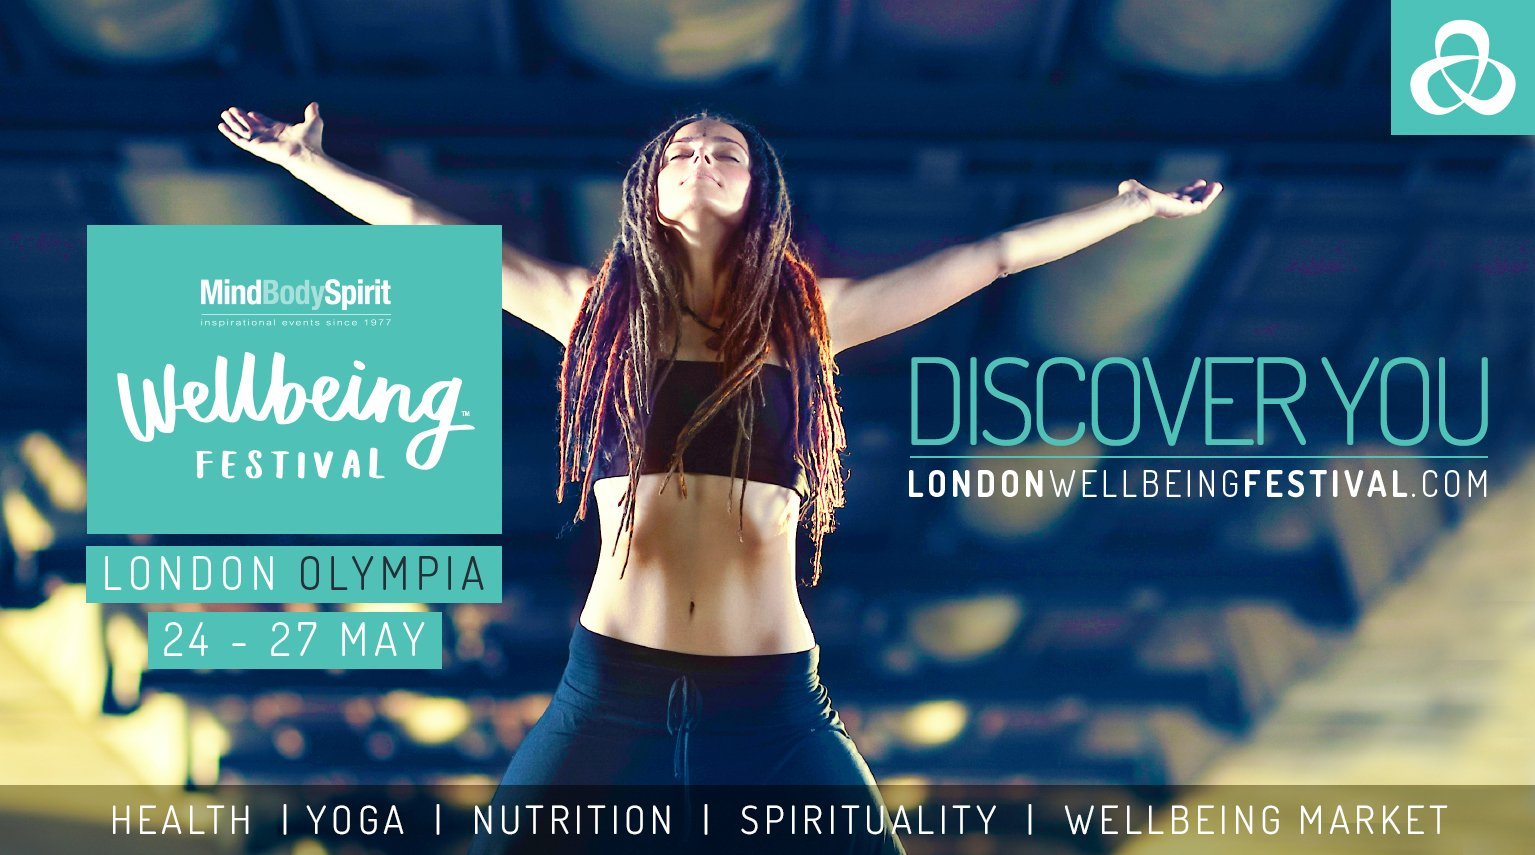 MBS Wellbeing Festival, London